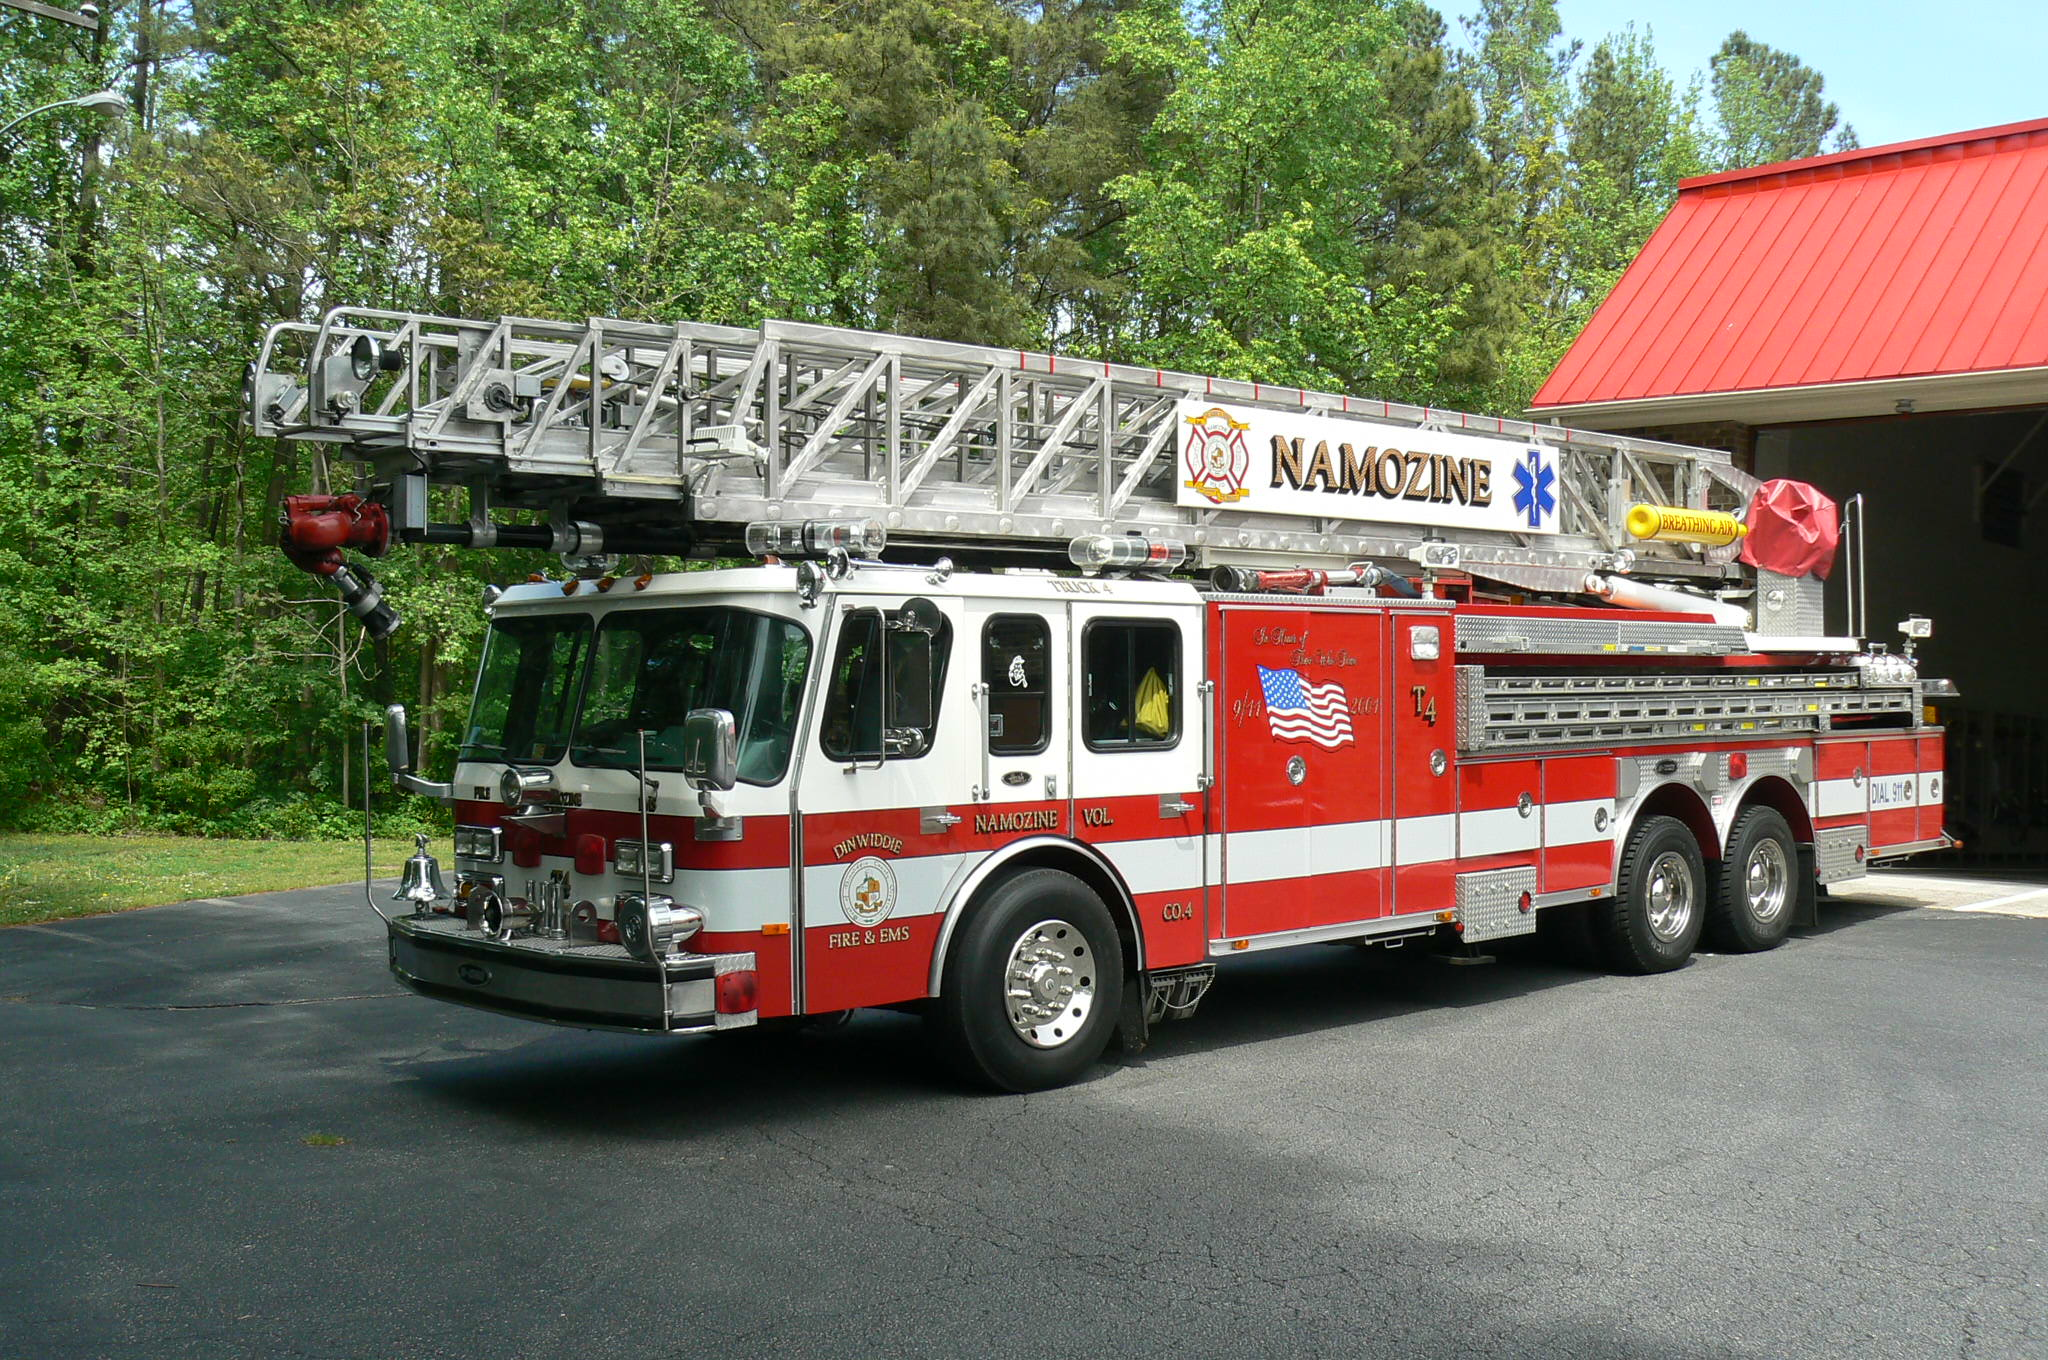 REd fire truck with ladder